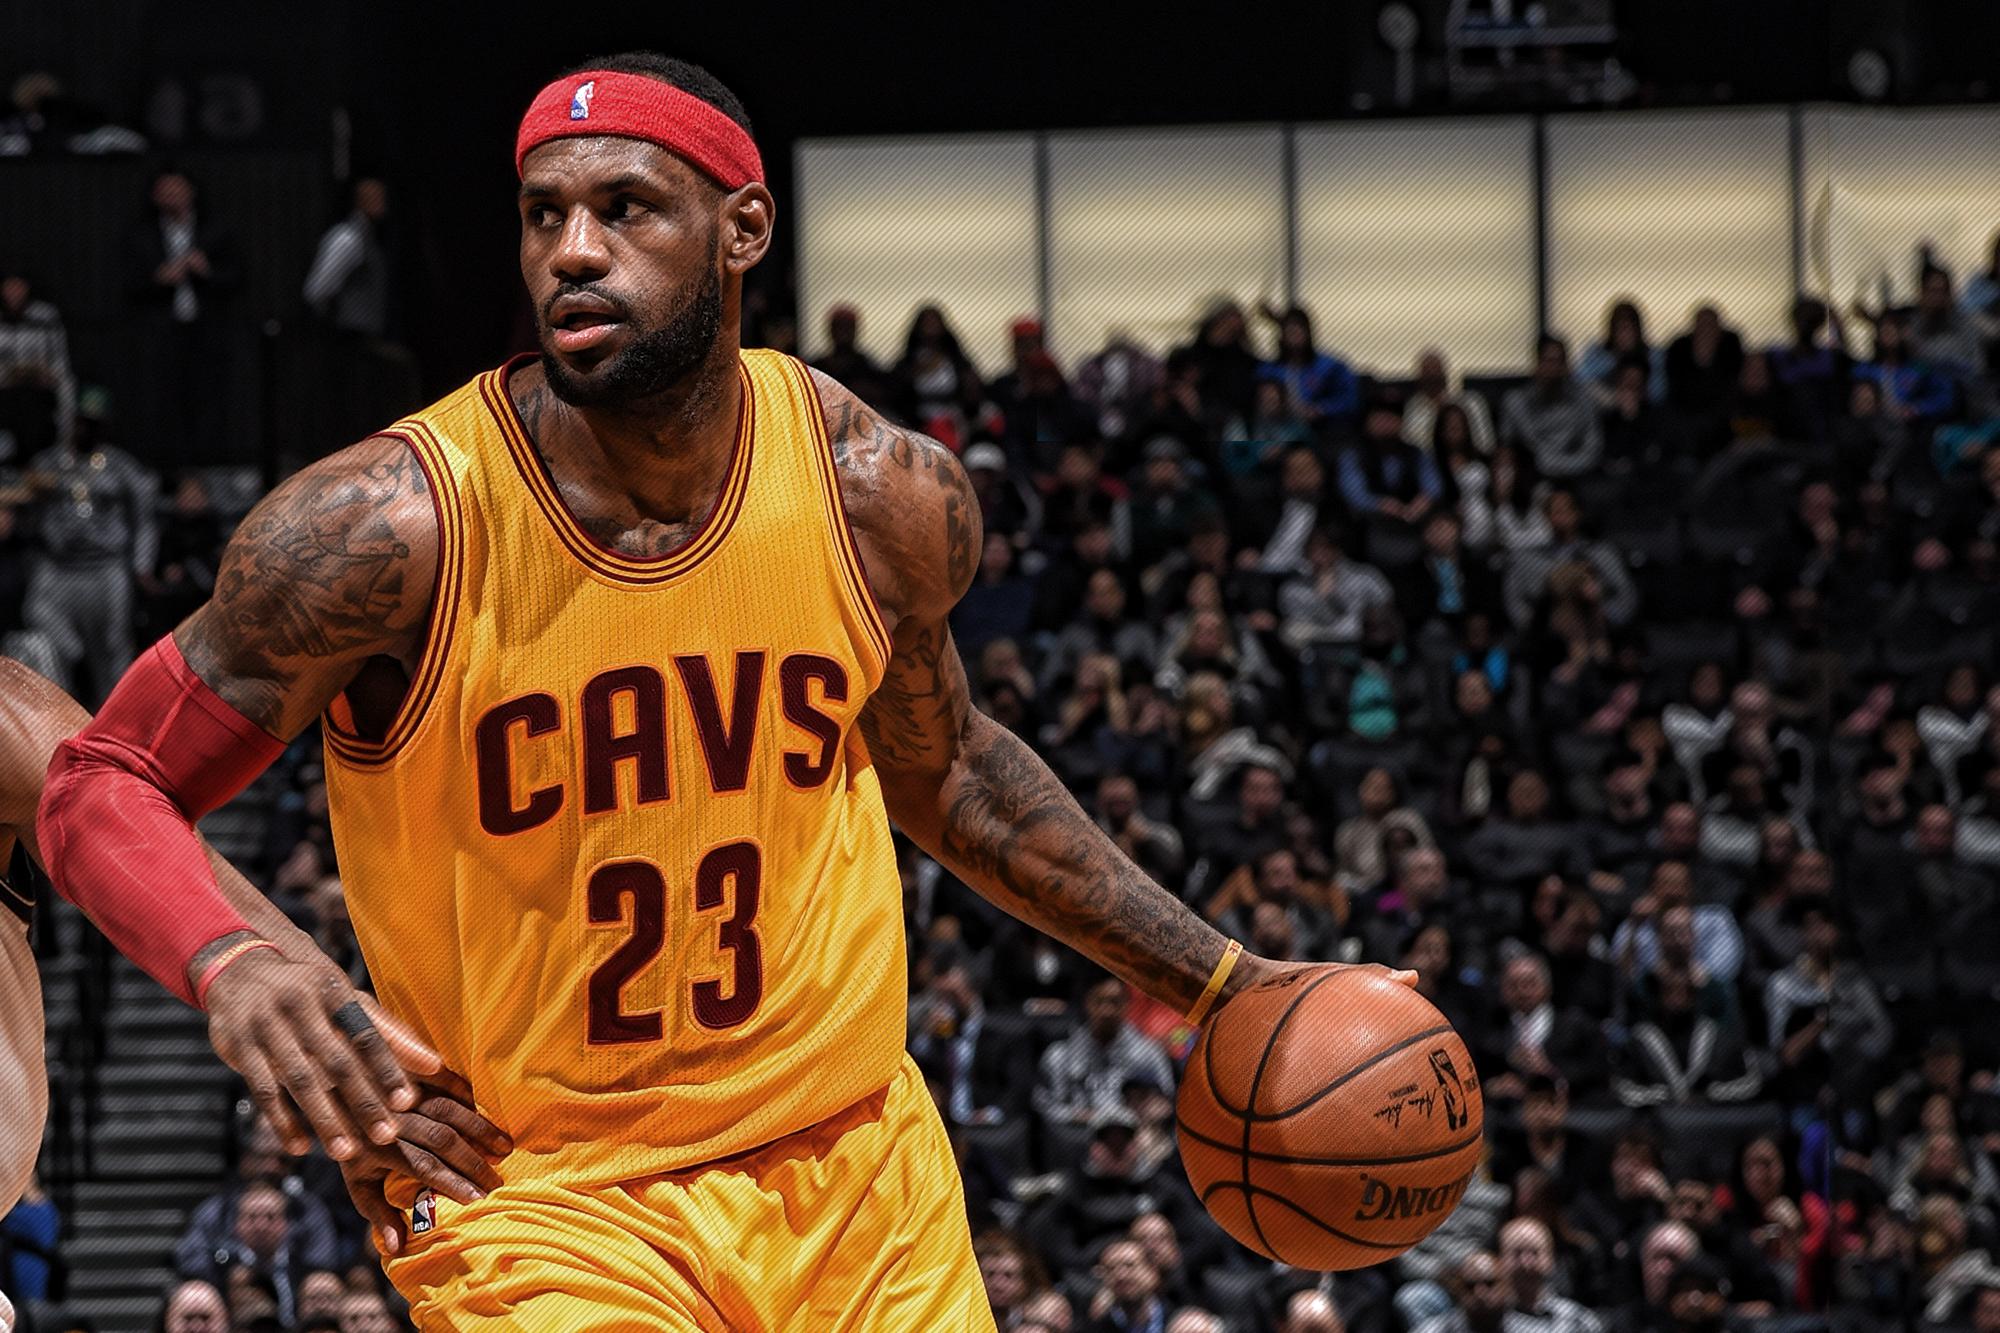 LeBron James Announces Plans to Attend College